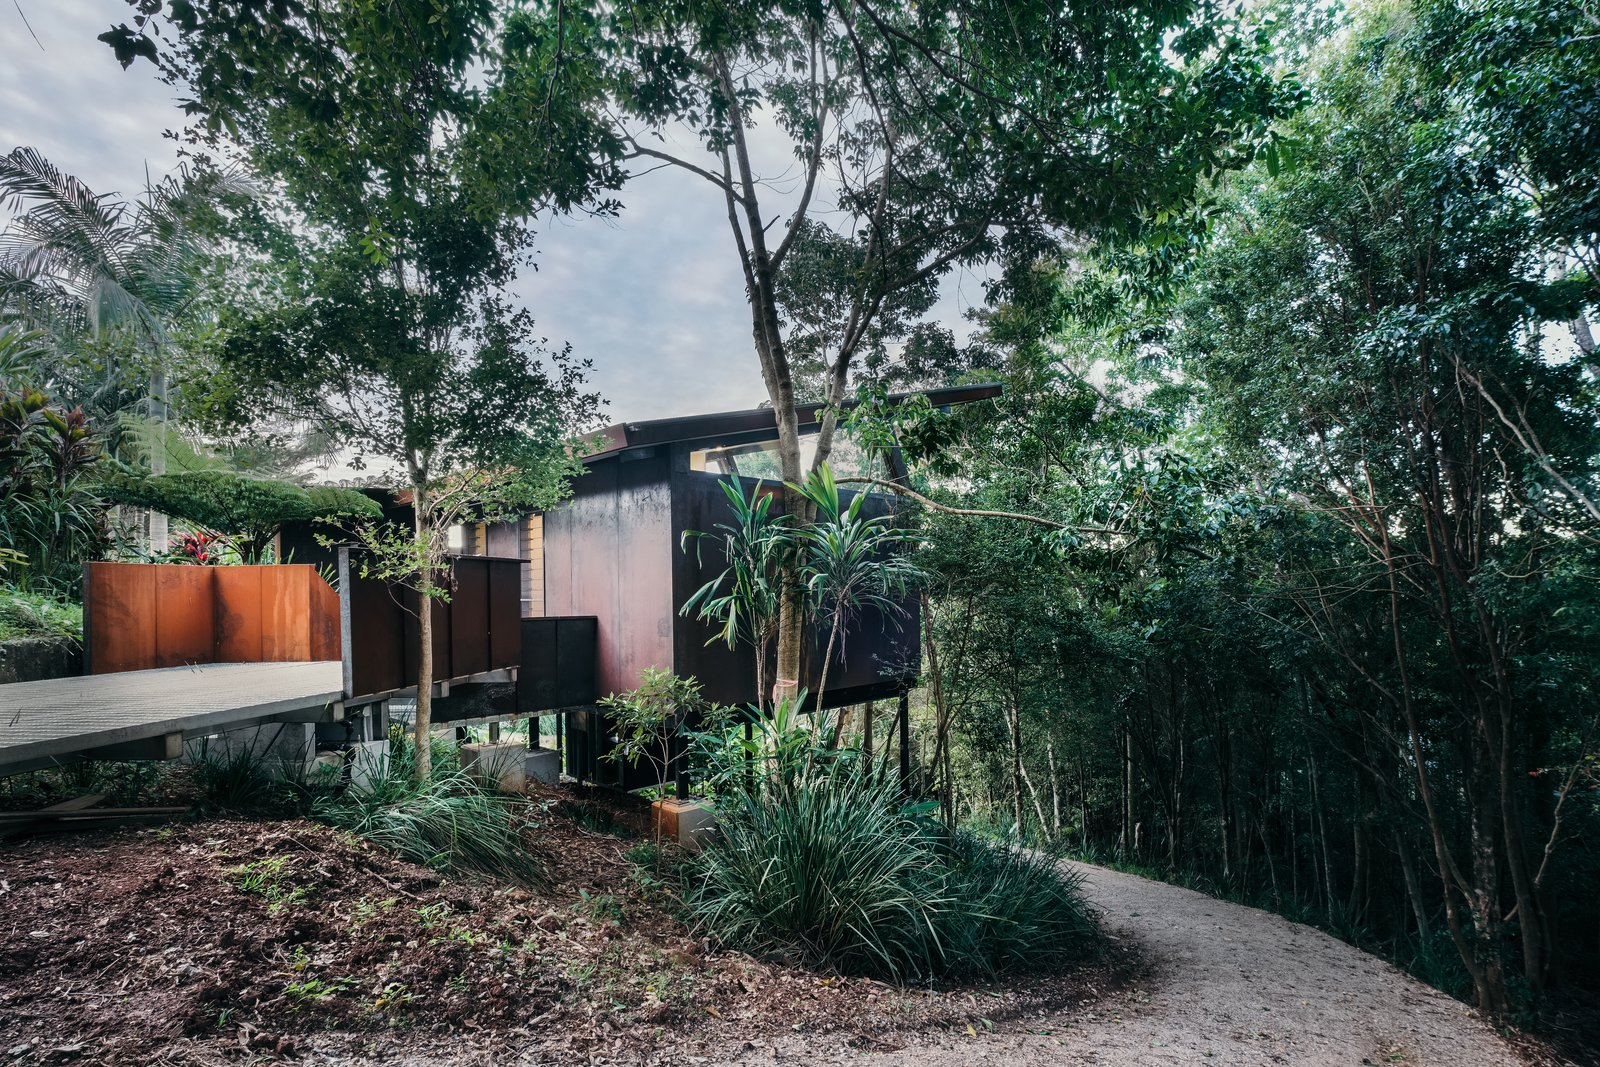 Outdoor, Small, Woodland, Trees, Wood, Vertical, Walkways, Wood, Shrubs, Side Yard, and Slope The home's low-maintenance Cor-Ten steel exterior can be easily washed down when needed.  Outdoor Side Yard Slope Photos from A Tiny Guesthouse Hides in a Lush Australian Rainforest